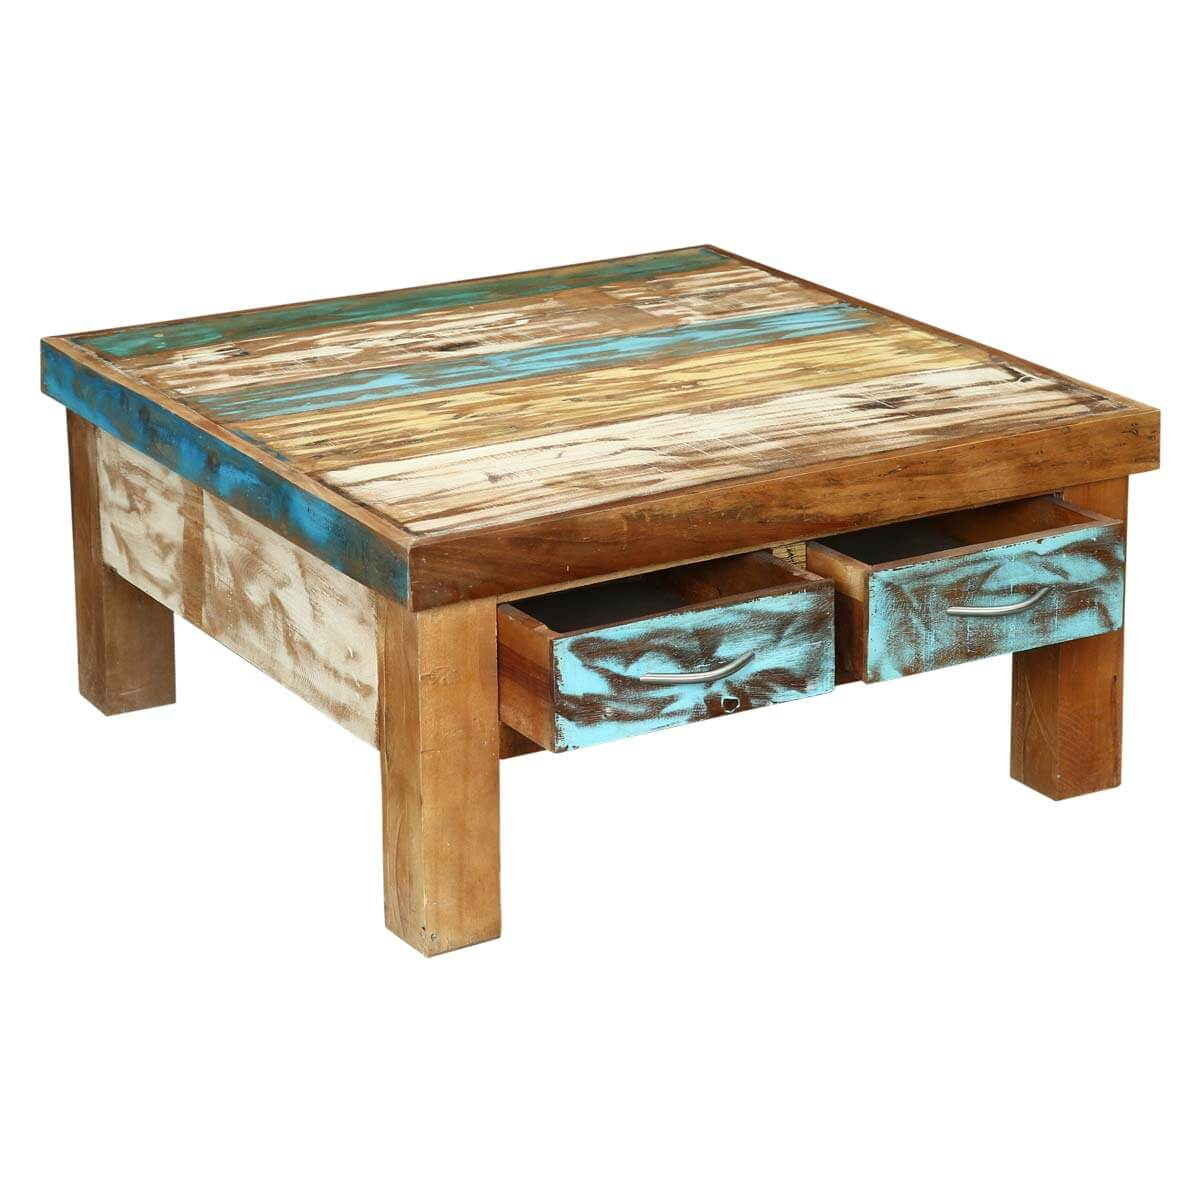 Rustic reclaimed wood 4 drawer coffee table seoul rustic reclaimed wood 4 drawer coffee table geotapseo Image collections